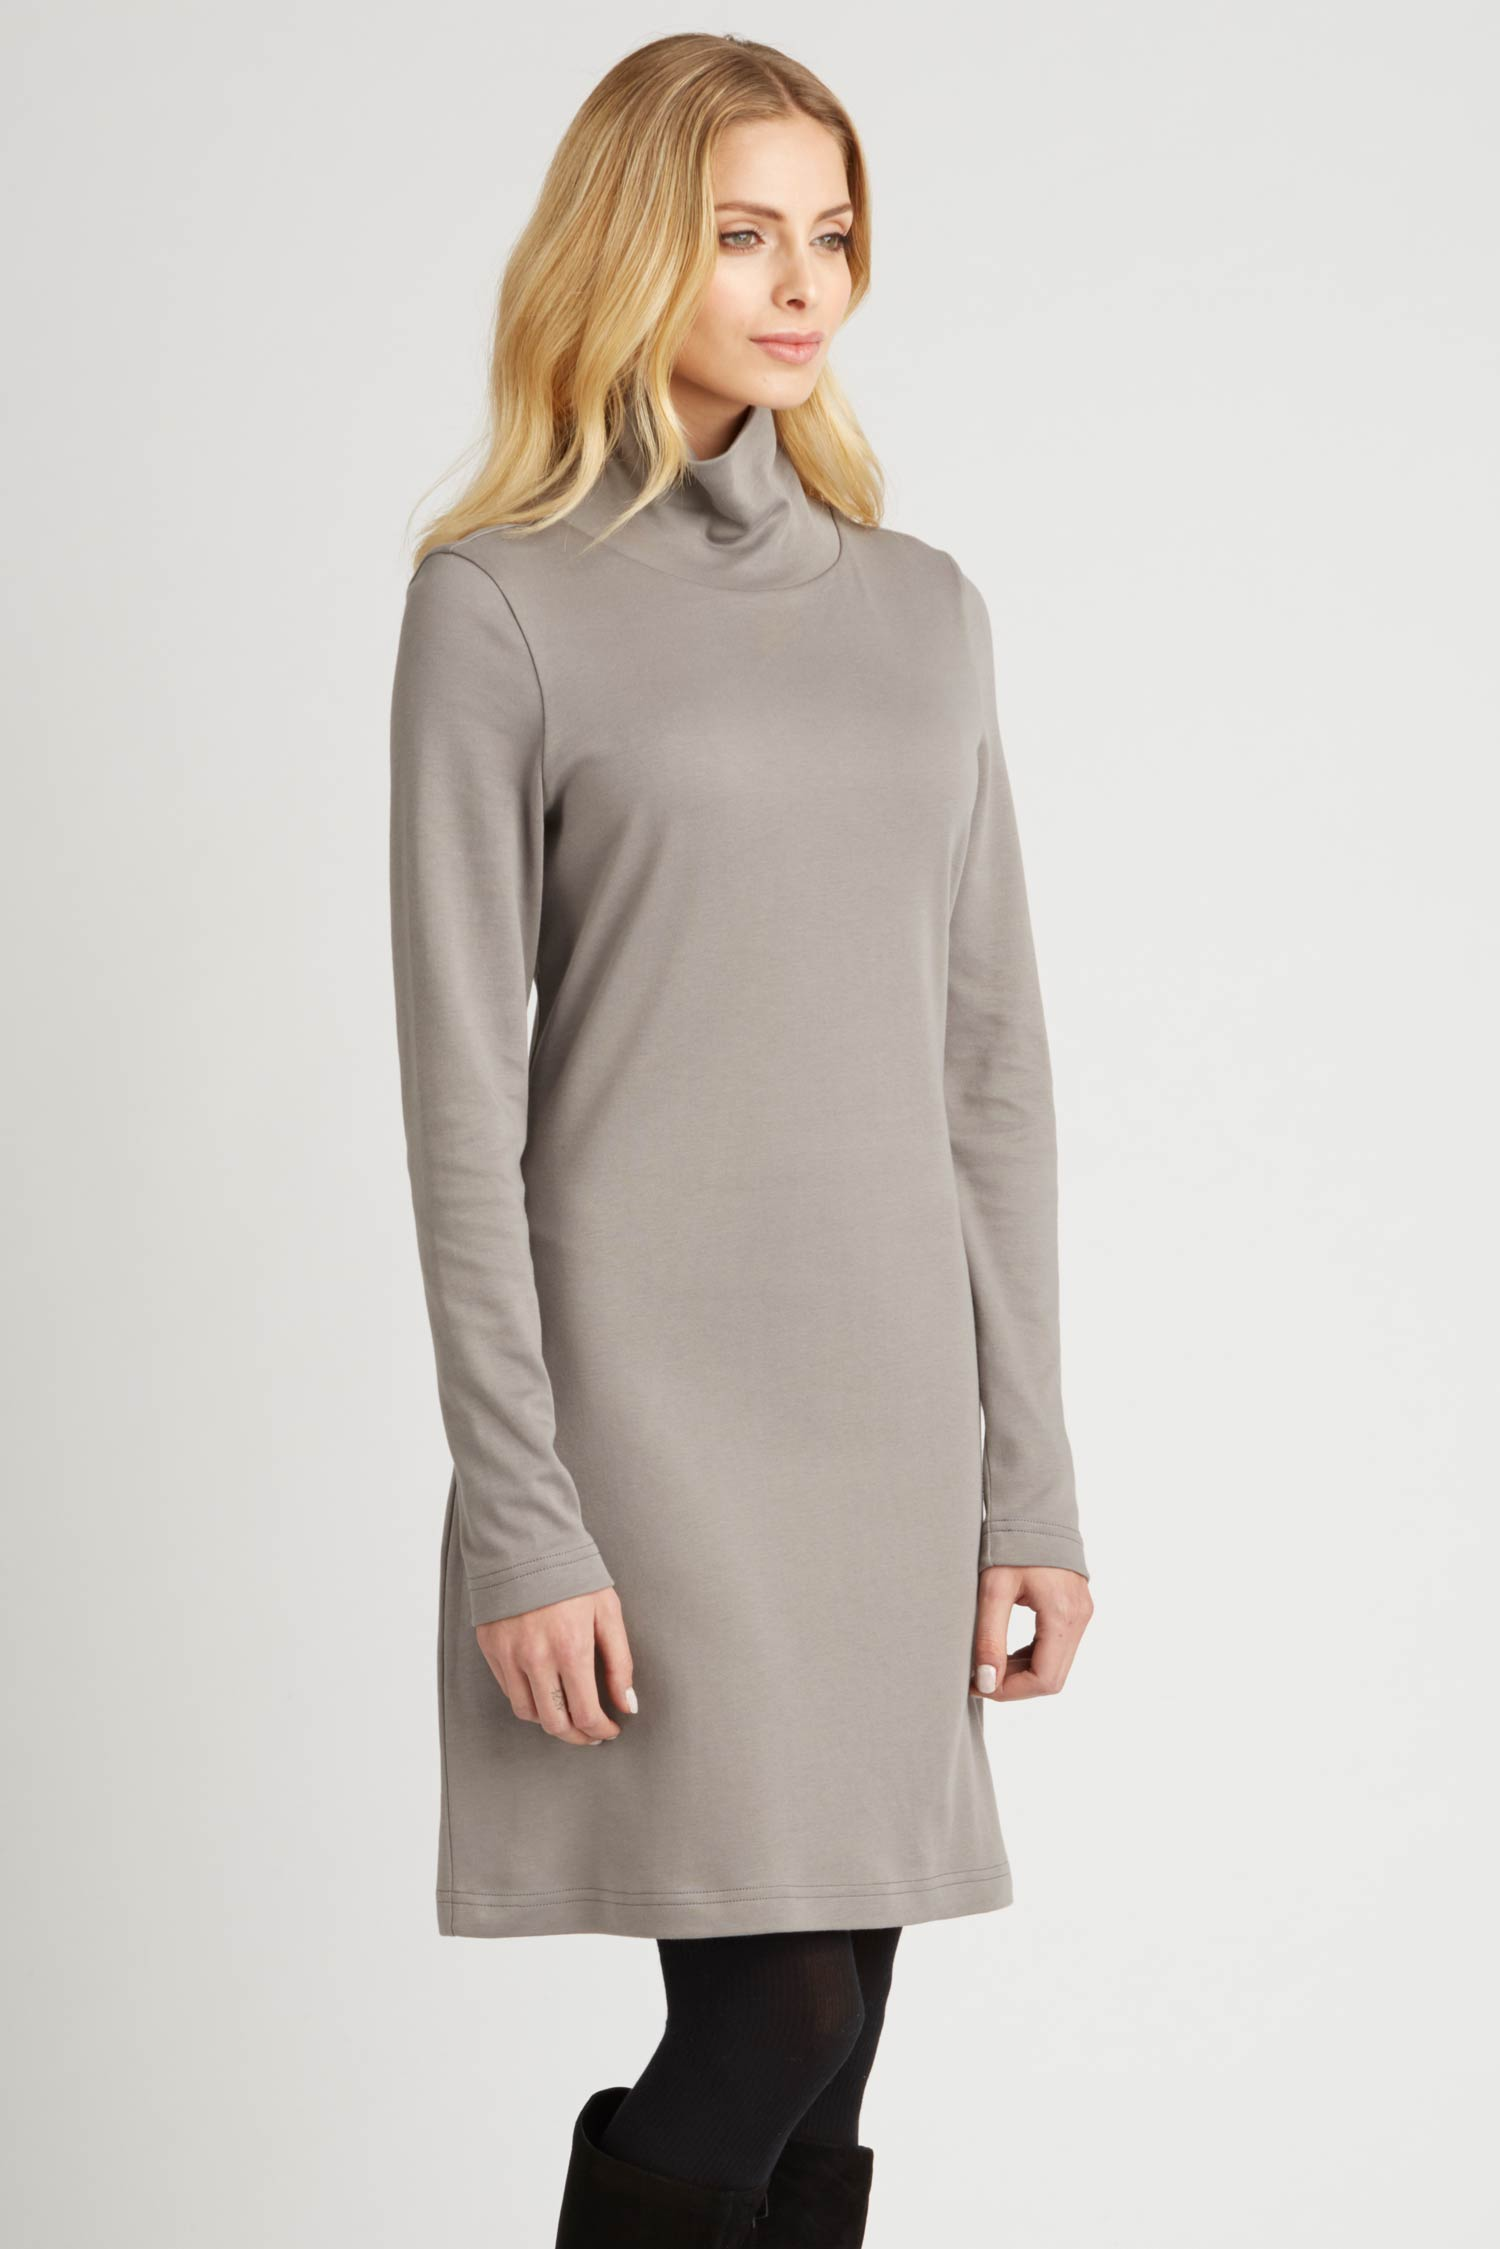 Womens Turtleneck Dress in Gray | Ethical Fashion